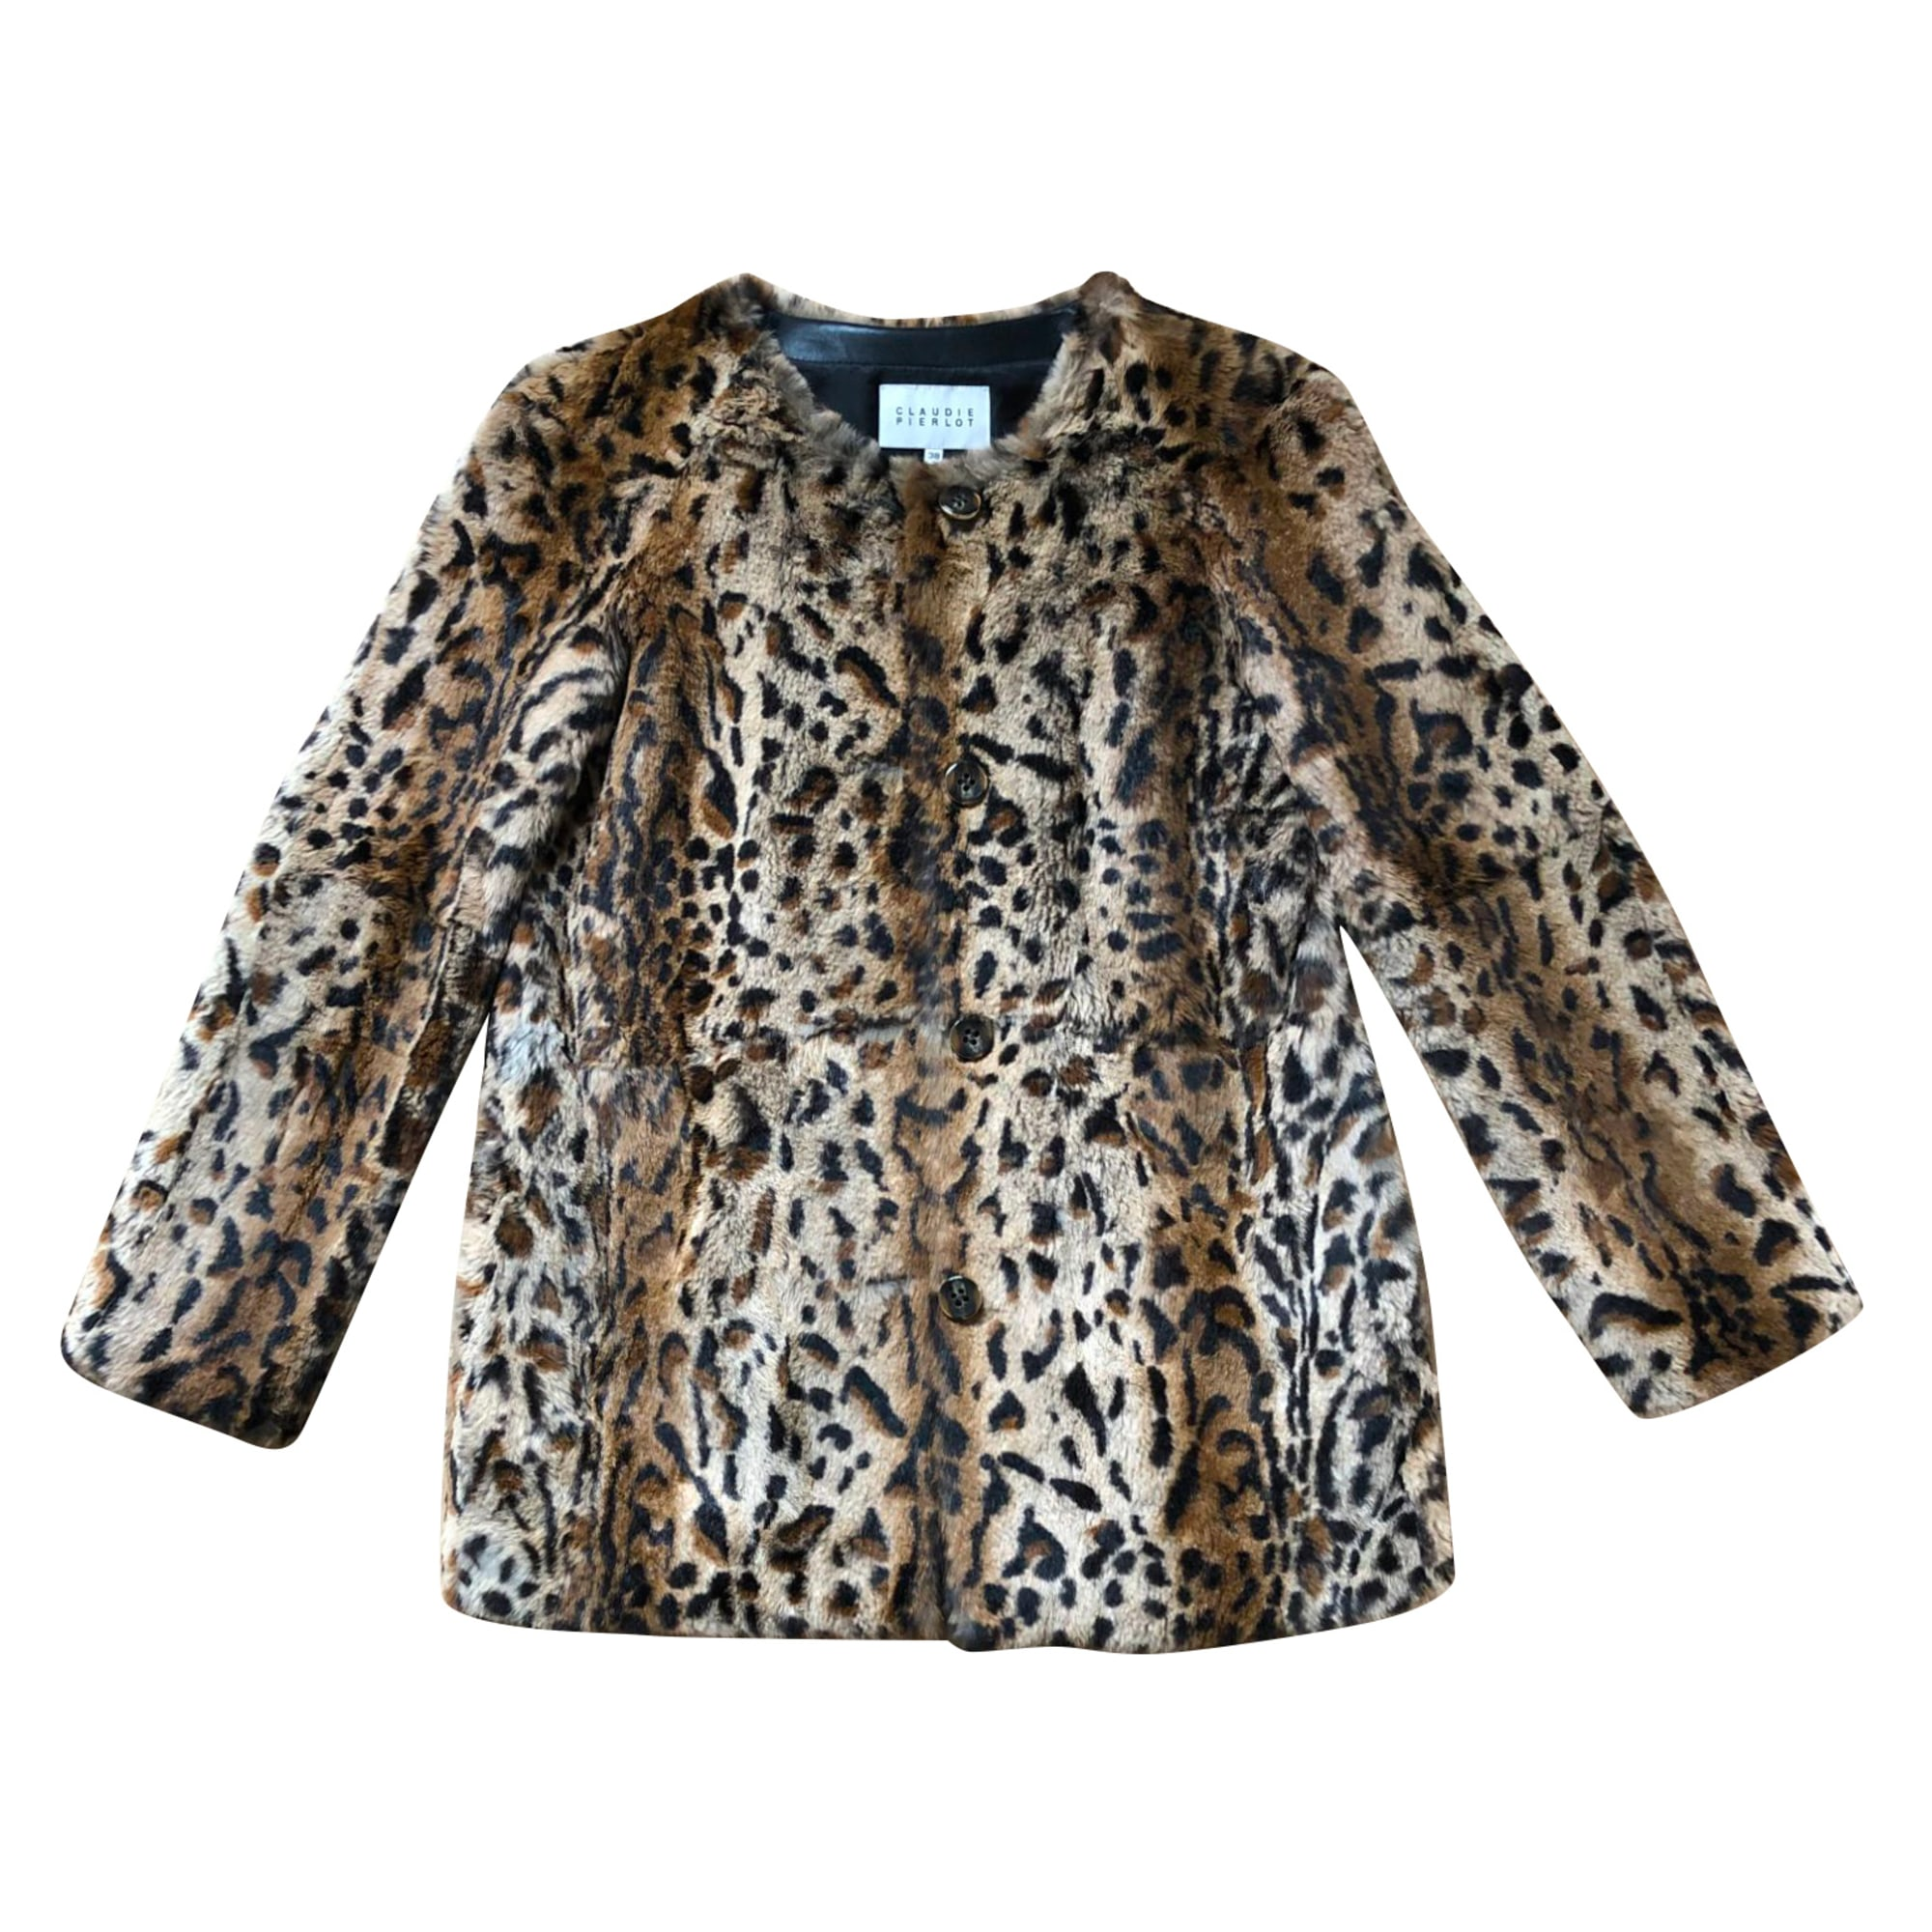 Fur Coat CLAUDIE PIERLOT Animal prints